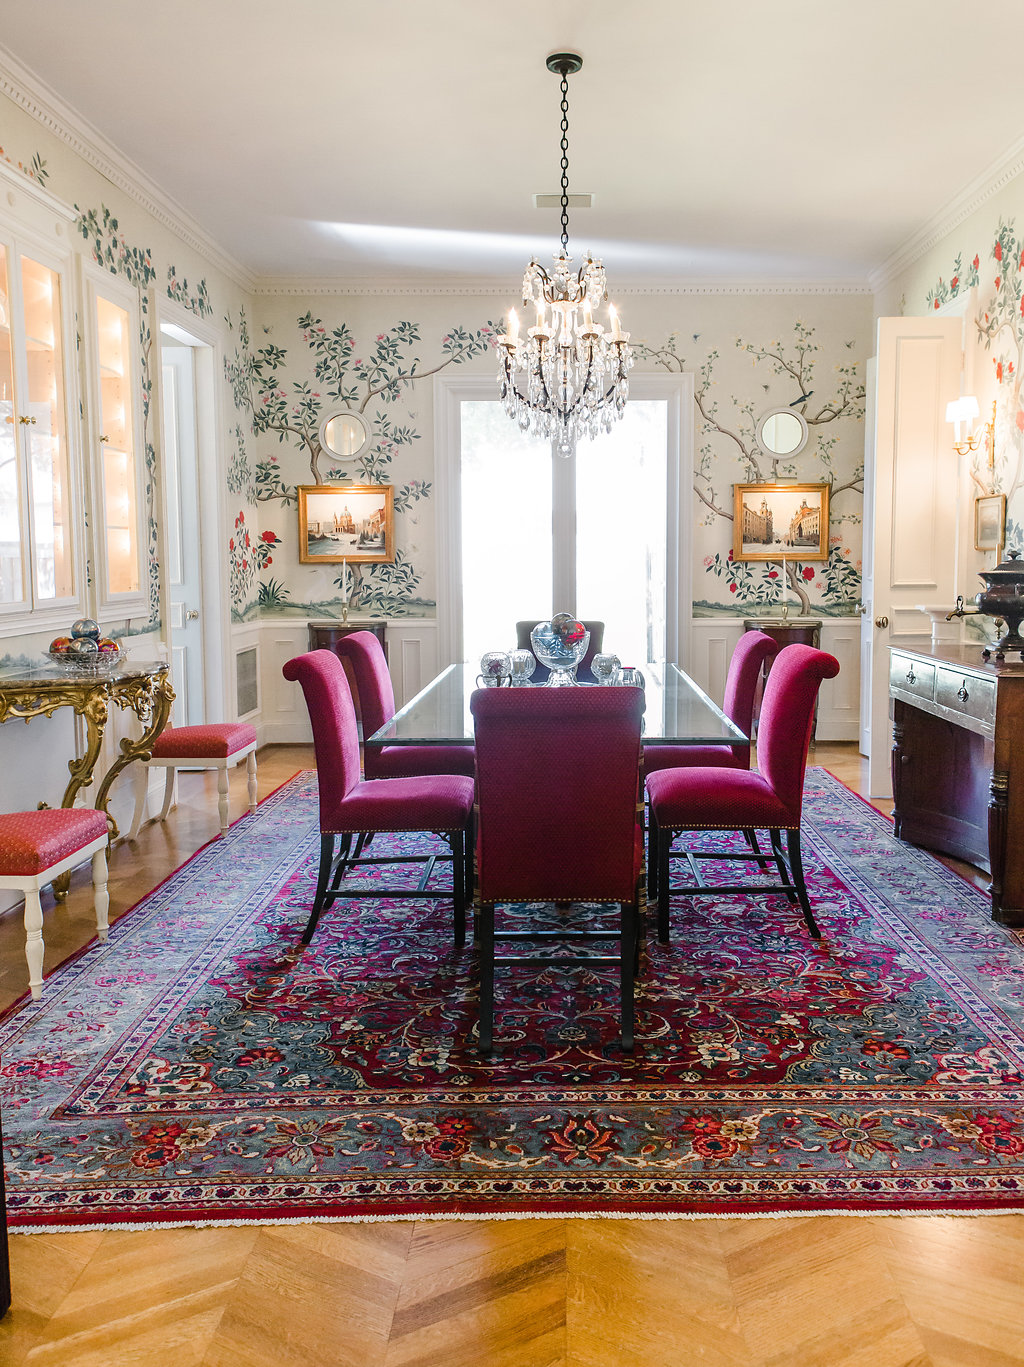 E TanyaFostercom Dining Room Remodel With Gracie Studio Custom Wallpaper